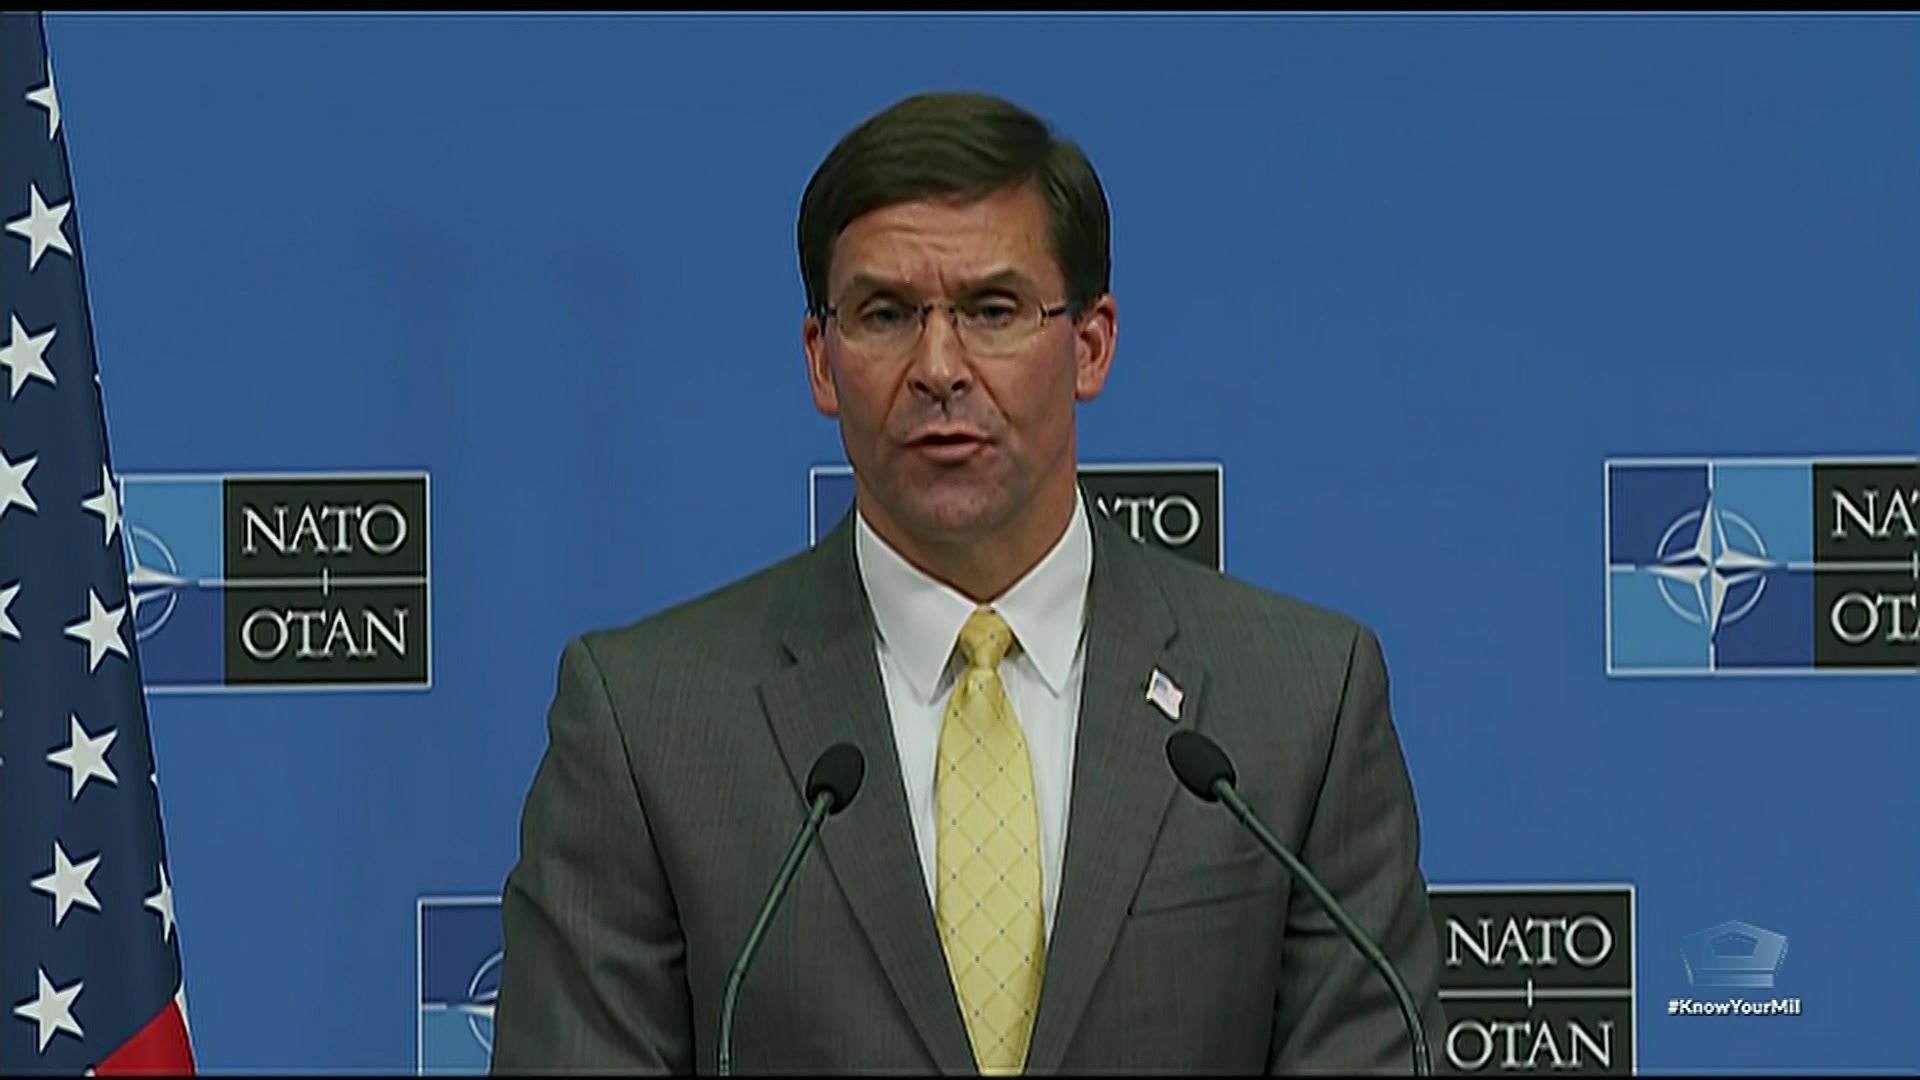 Defense Secretary Dr. Mark T. Esper participates in a news conference at the NATO defense ministerial conference in Brussels, Oct. 25, 2019.